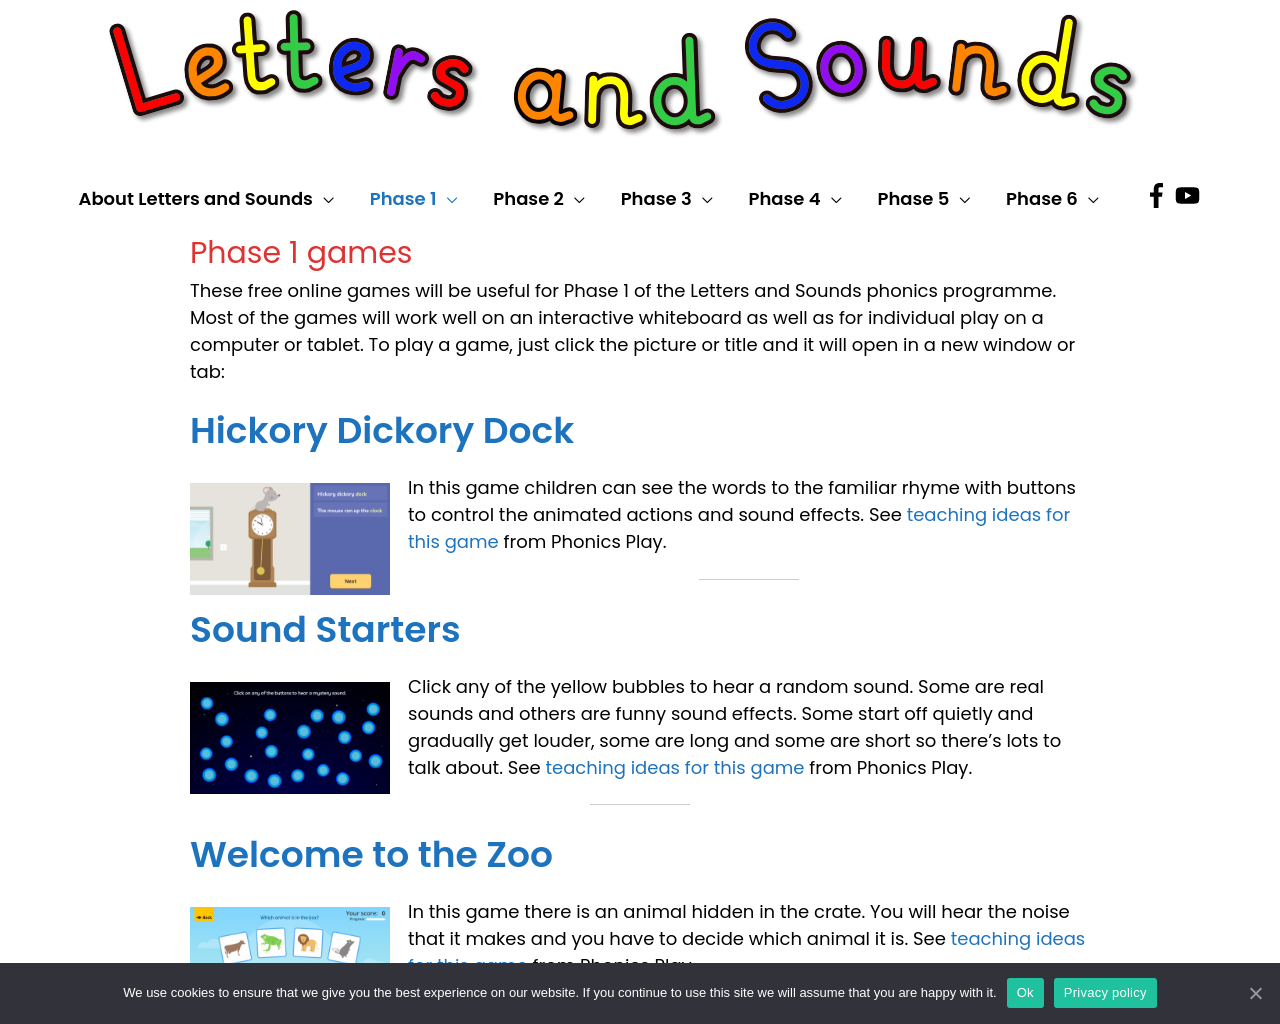 Letter and sound games